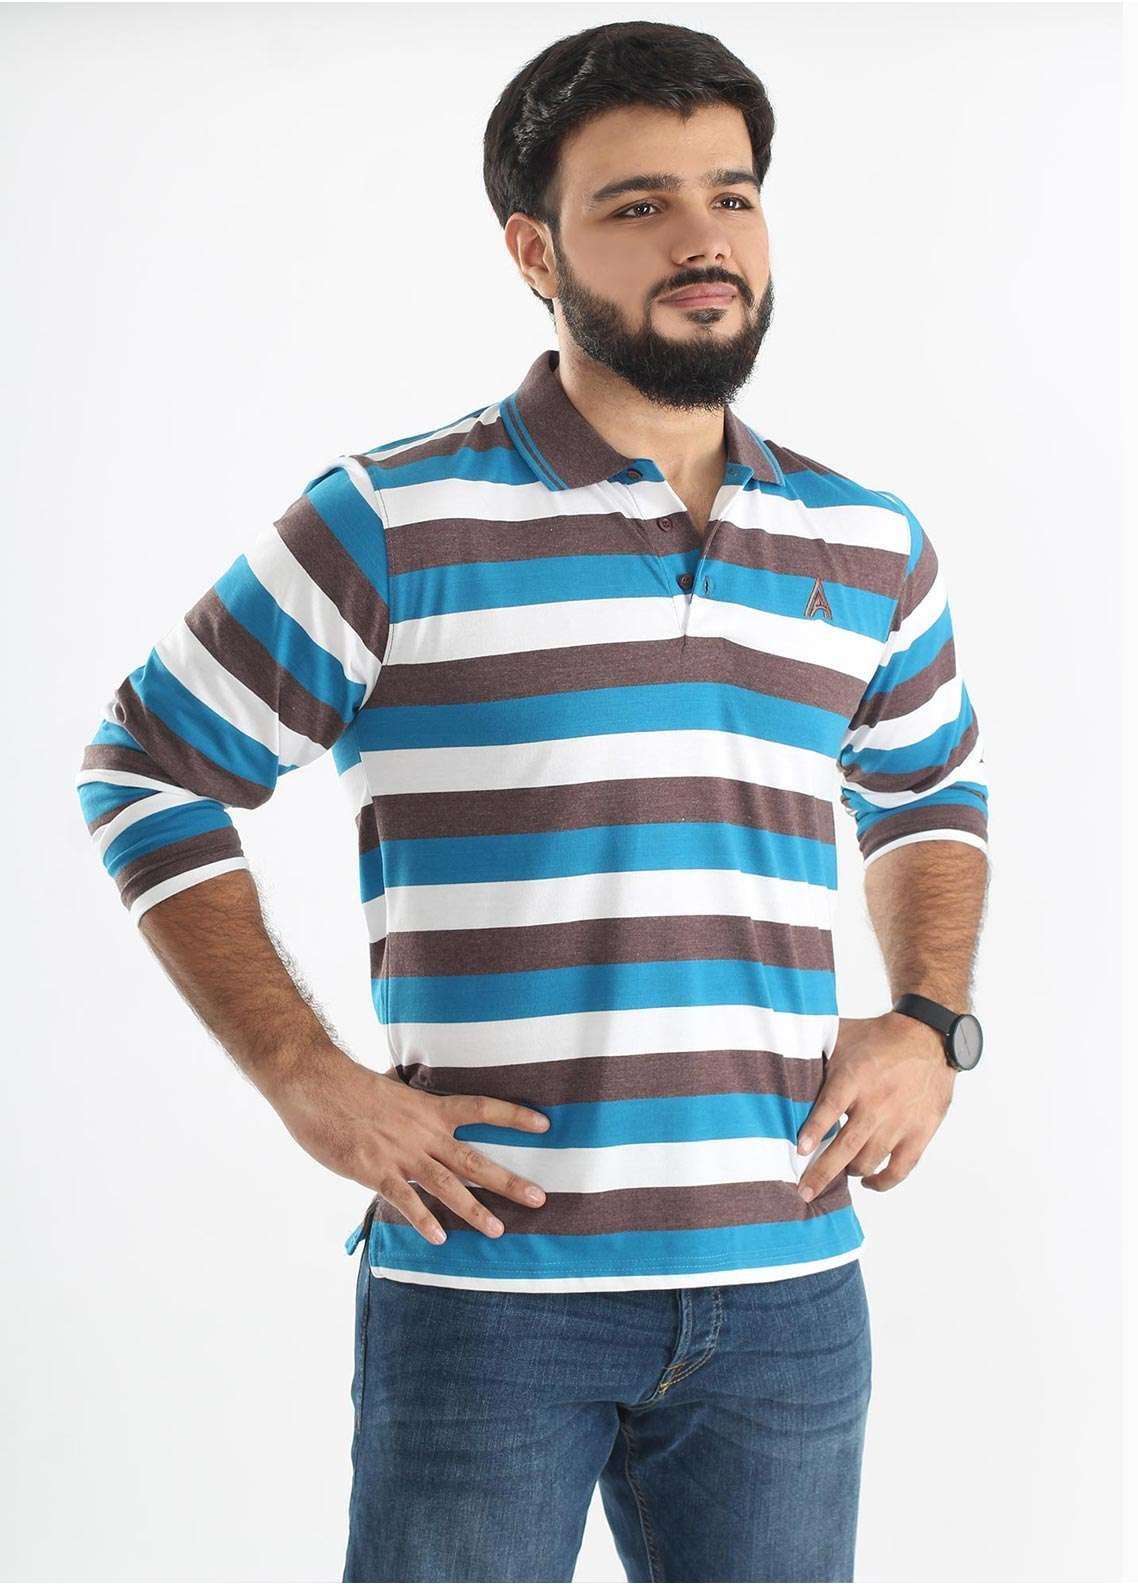 Anchor Jersey Polo T-Shirts for Men - Multi A-216